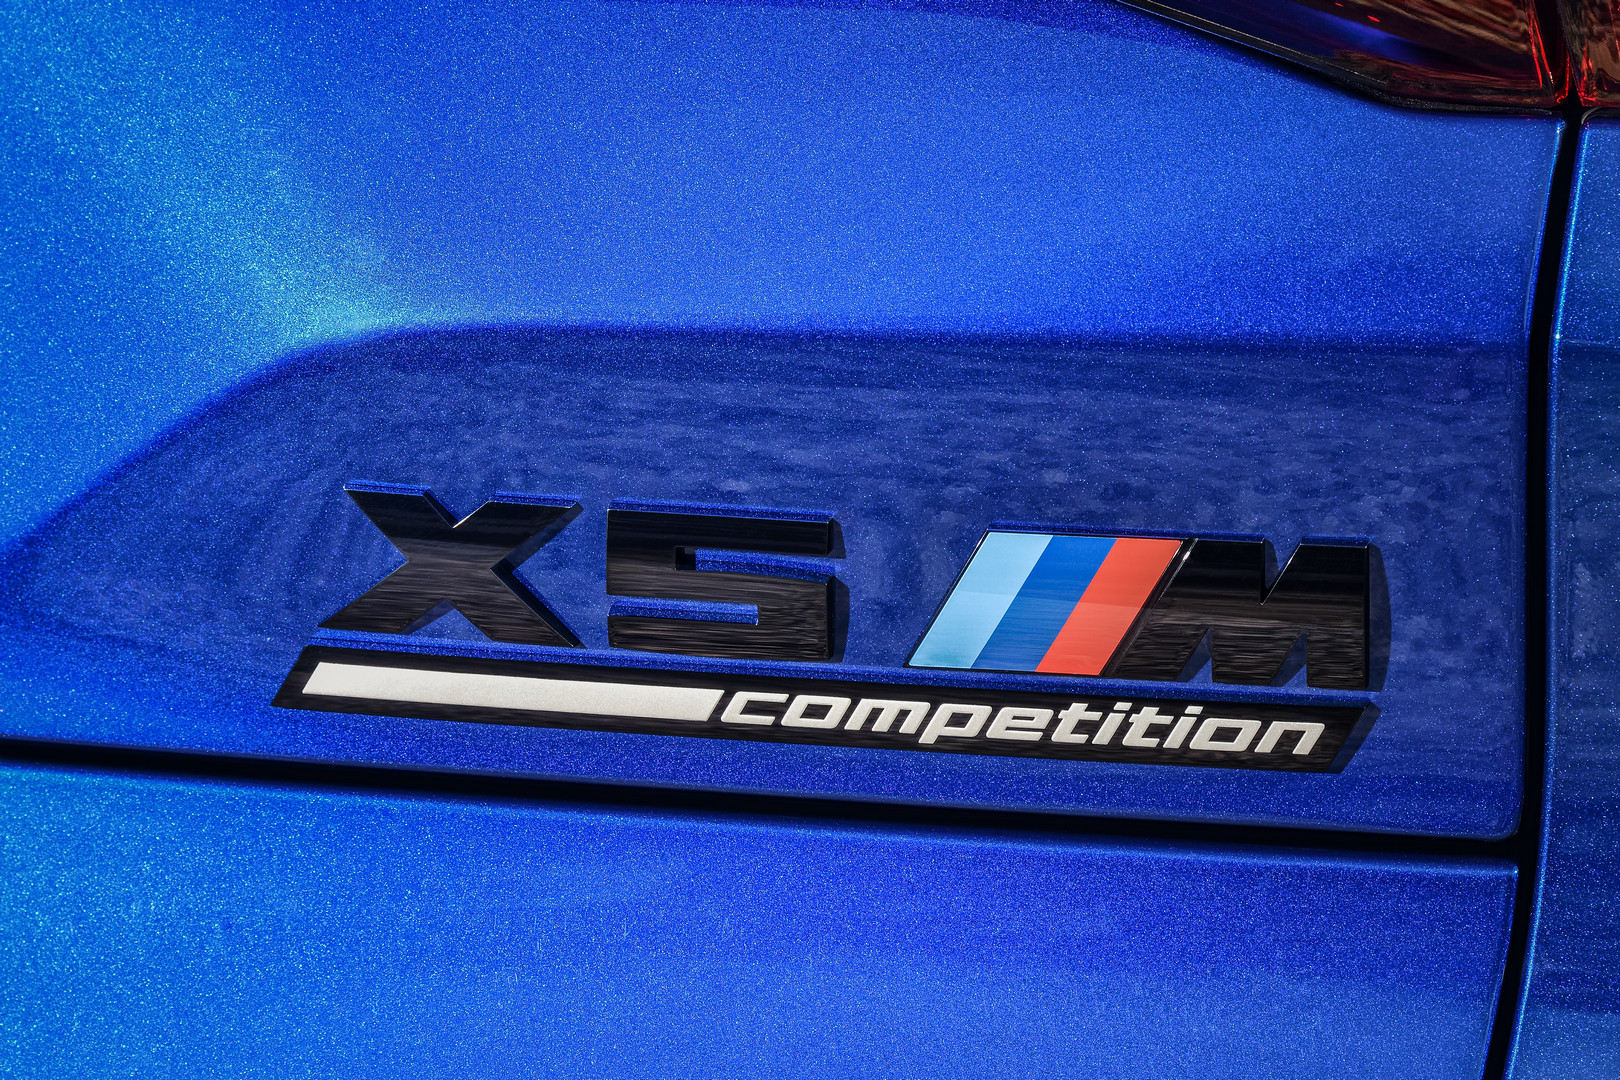 X5 M Competion Badge